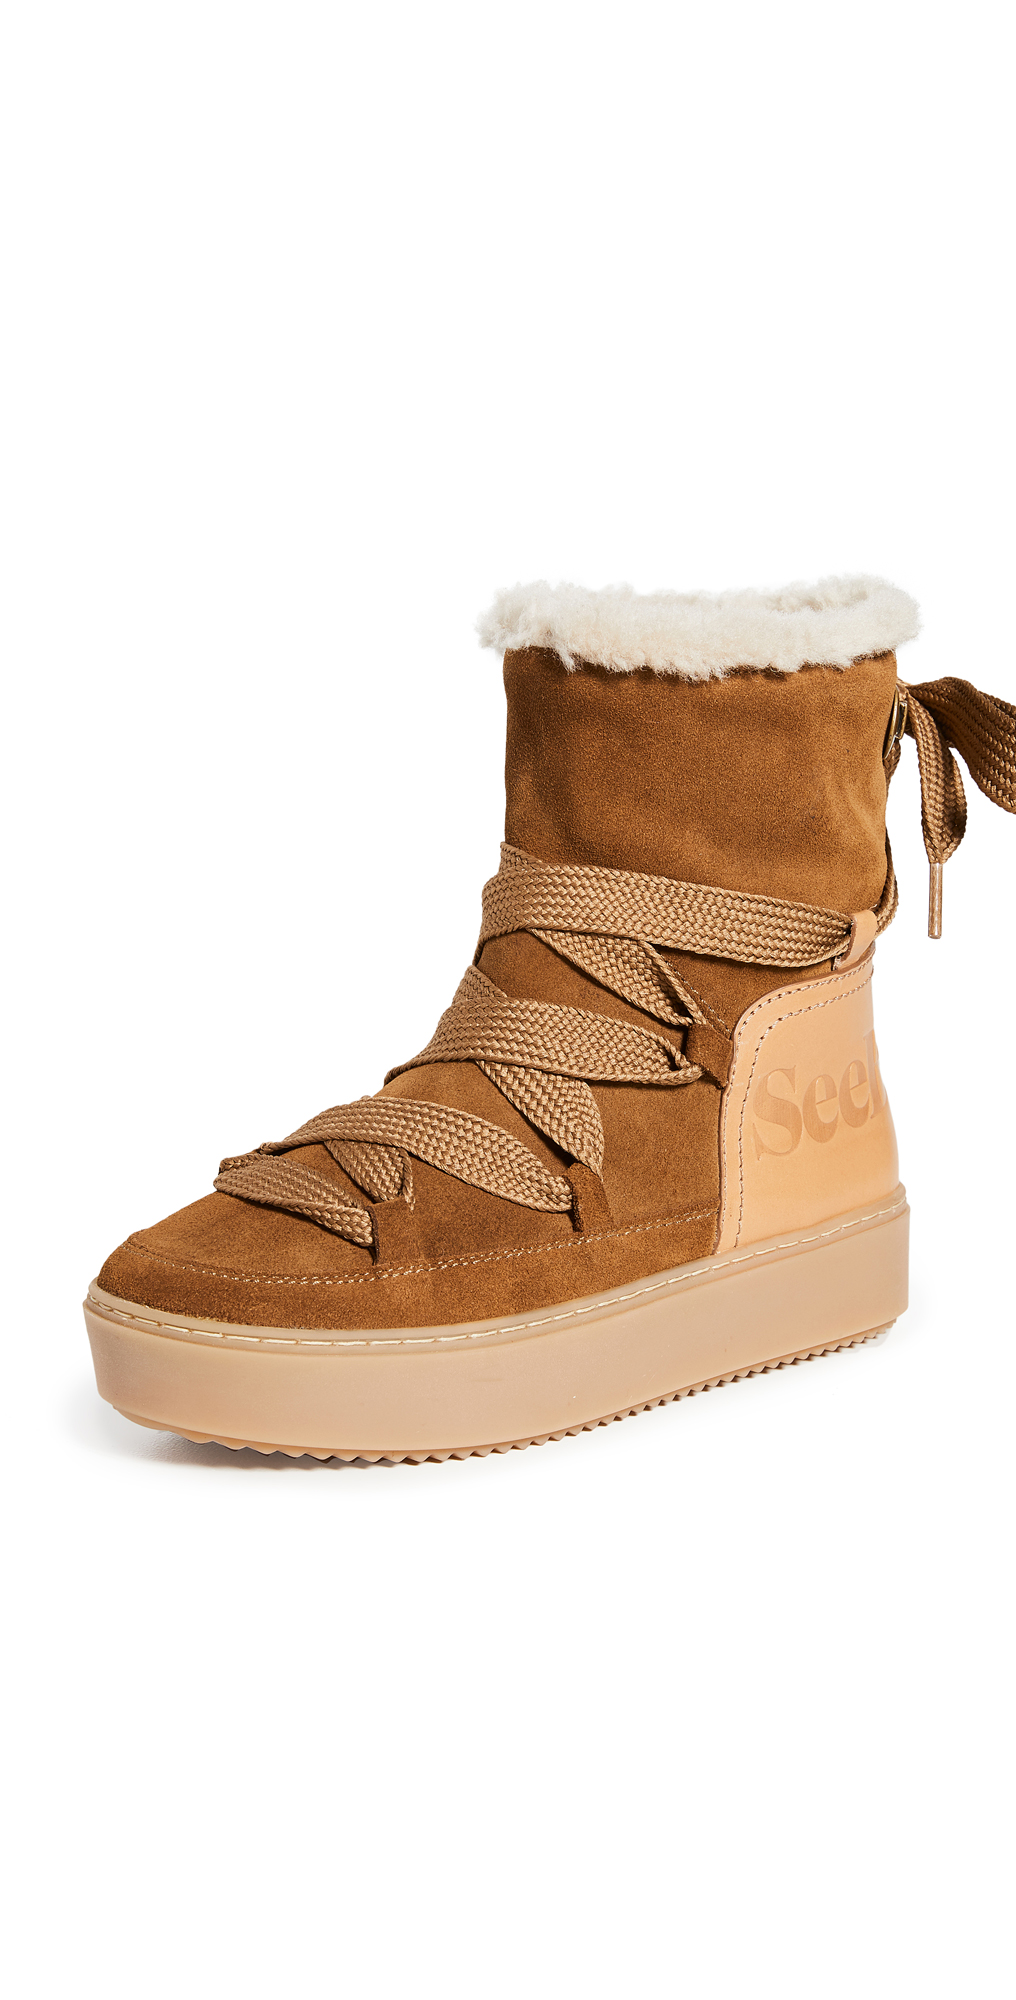 See by Chloe Charlee Shearling Ankle Boots